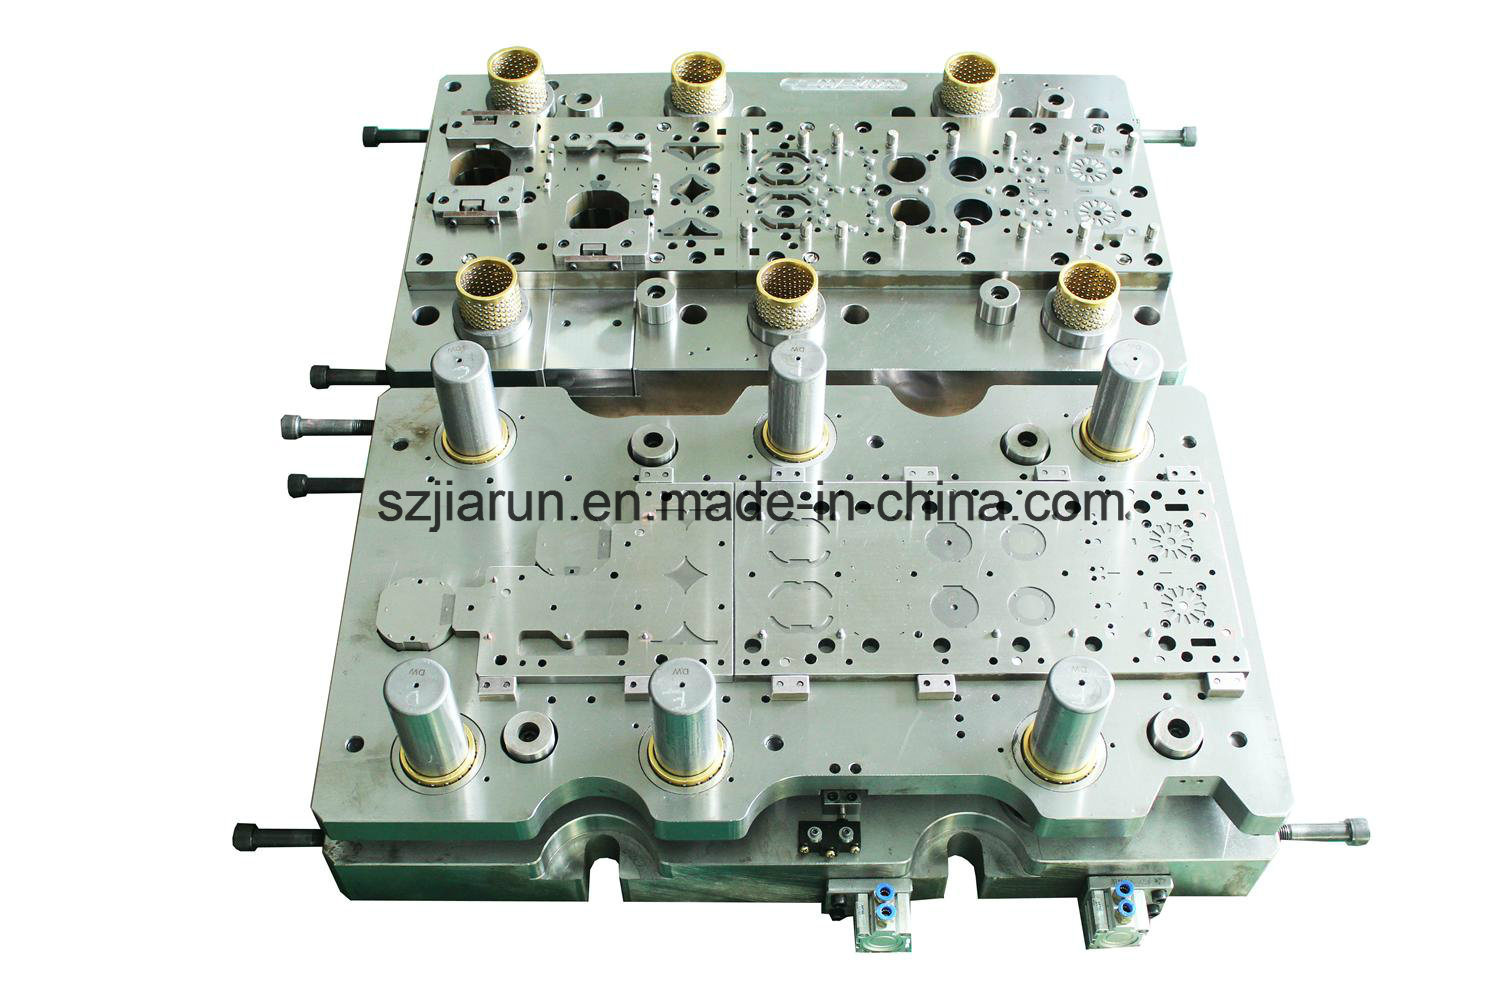 Double Row Progressive Stamping Die, Stamping Mould and Tool